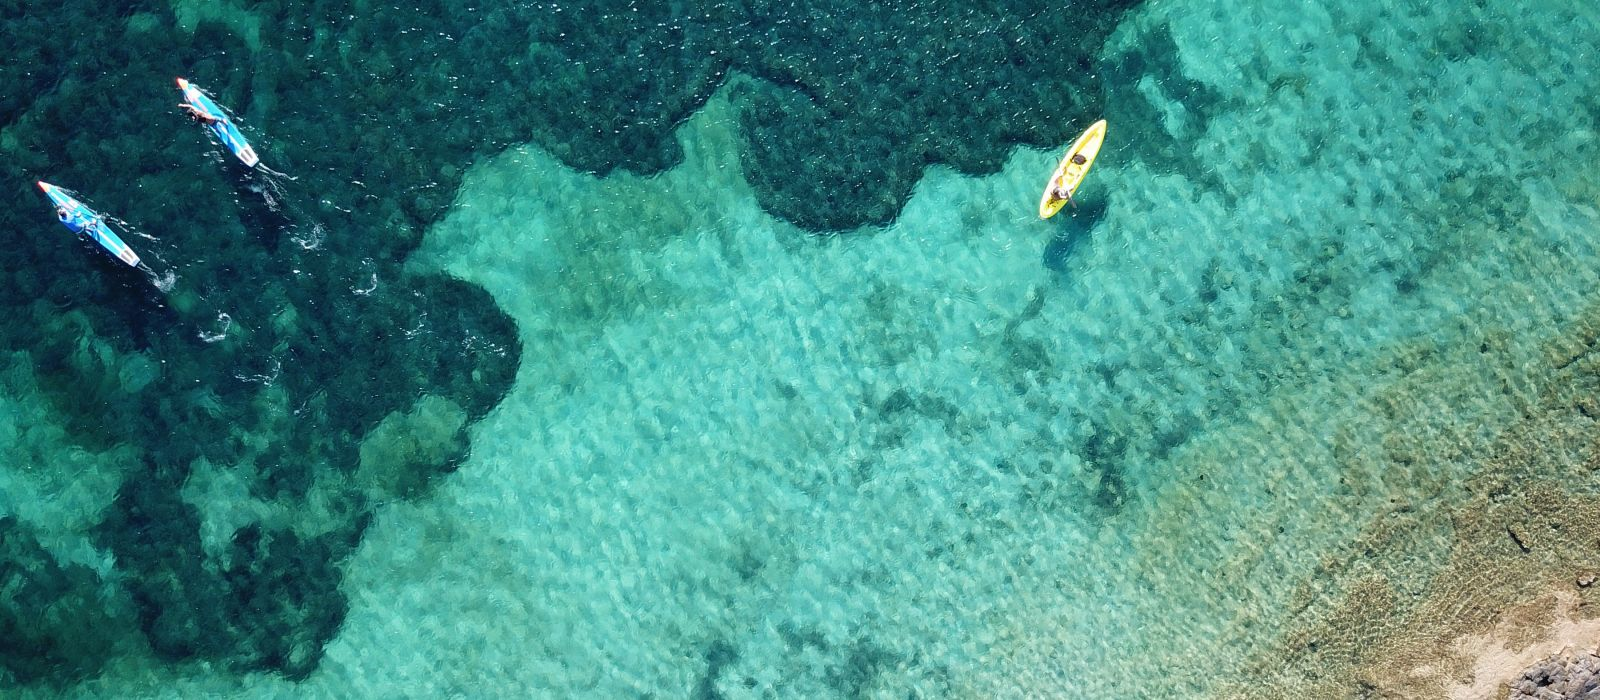 Aerial drone bird's eye view of kayaks cruising in tropical rocky seascape with turquoise and sapphire clear waters